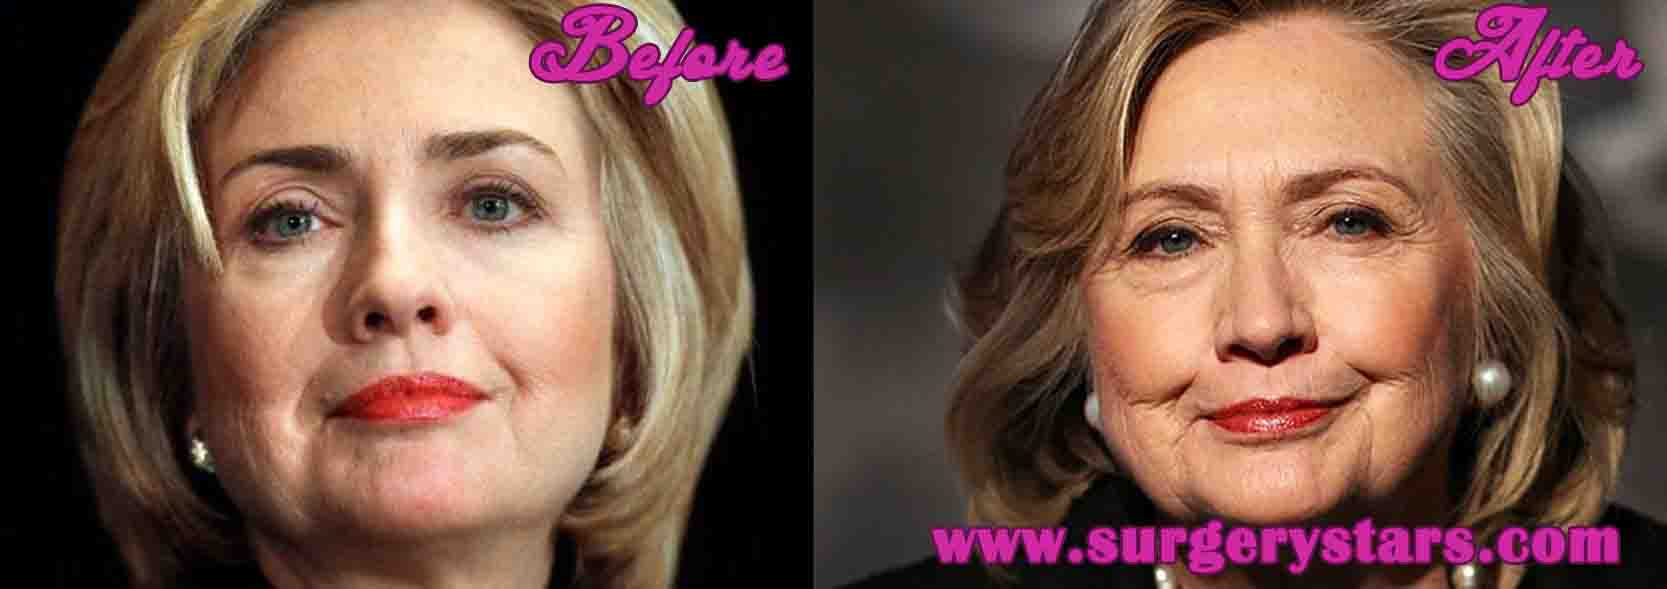 Hilary Clinton Before Plastic Surgery photo - 1